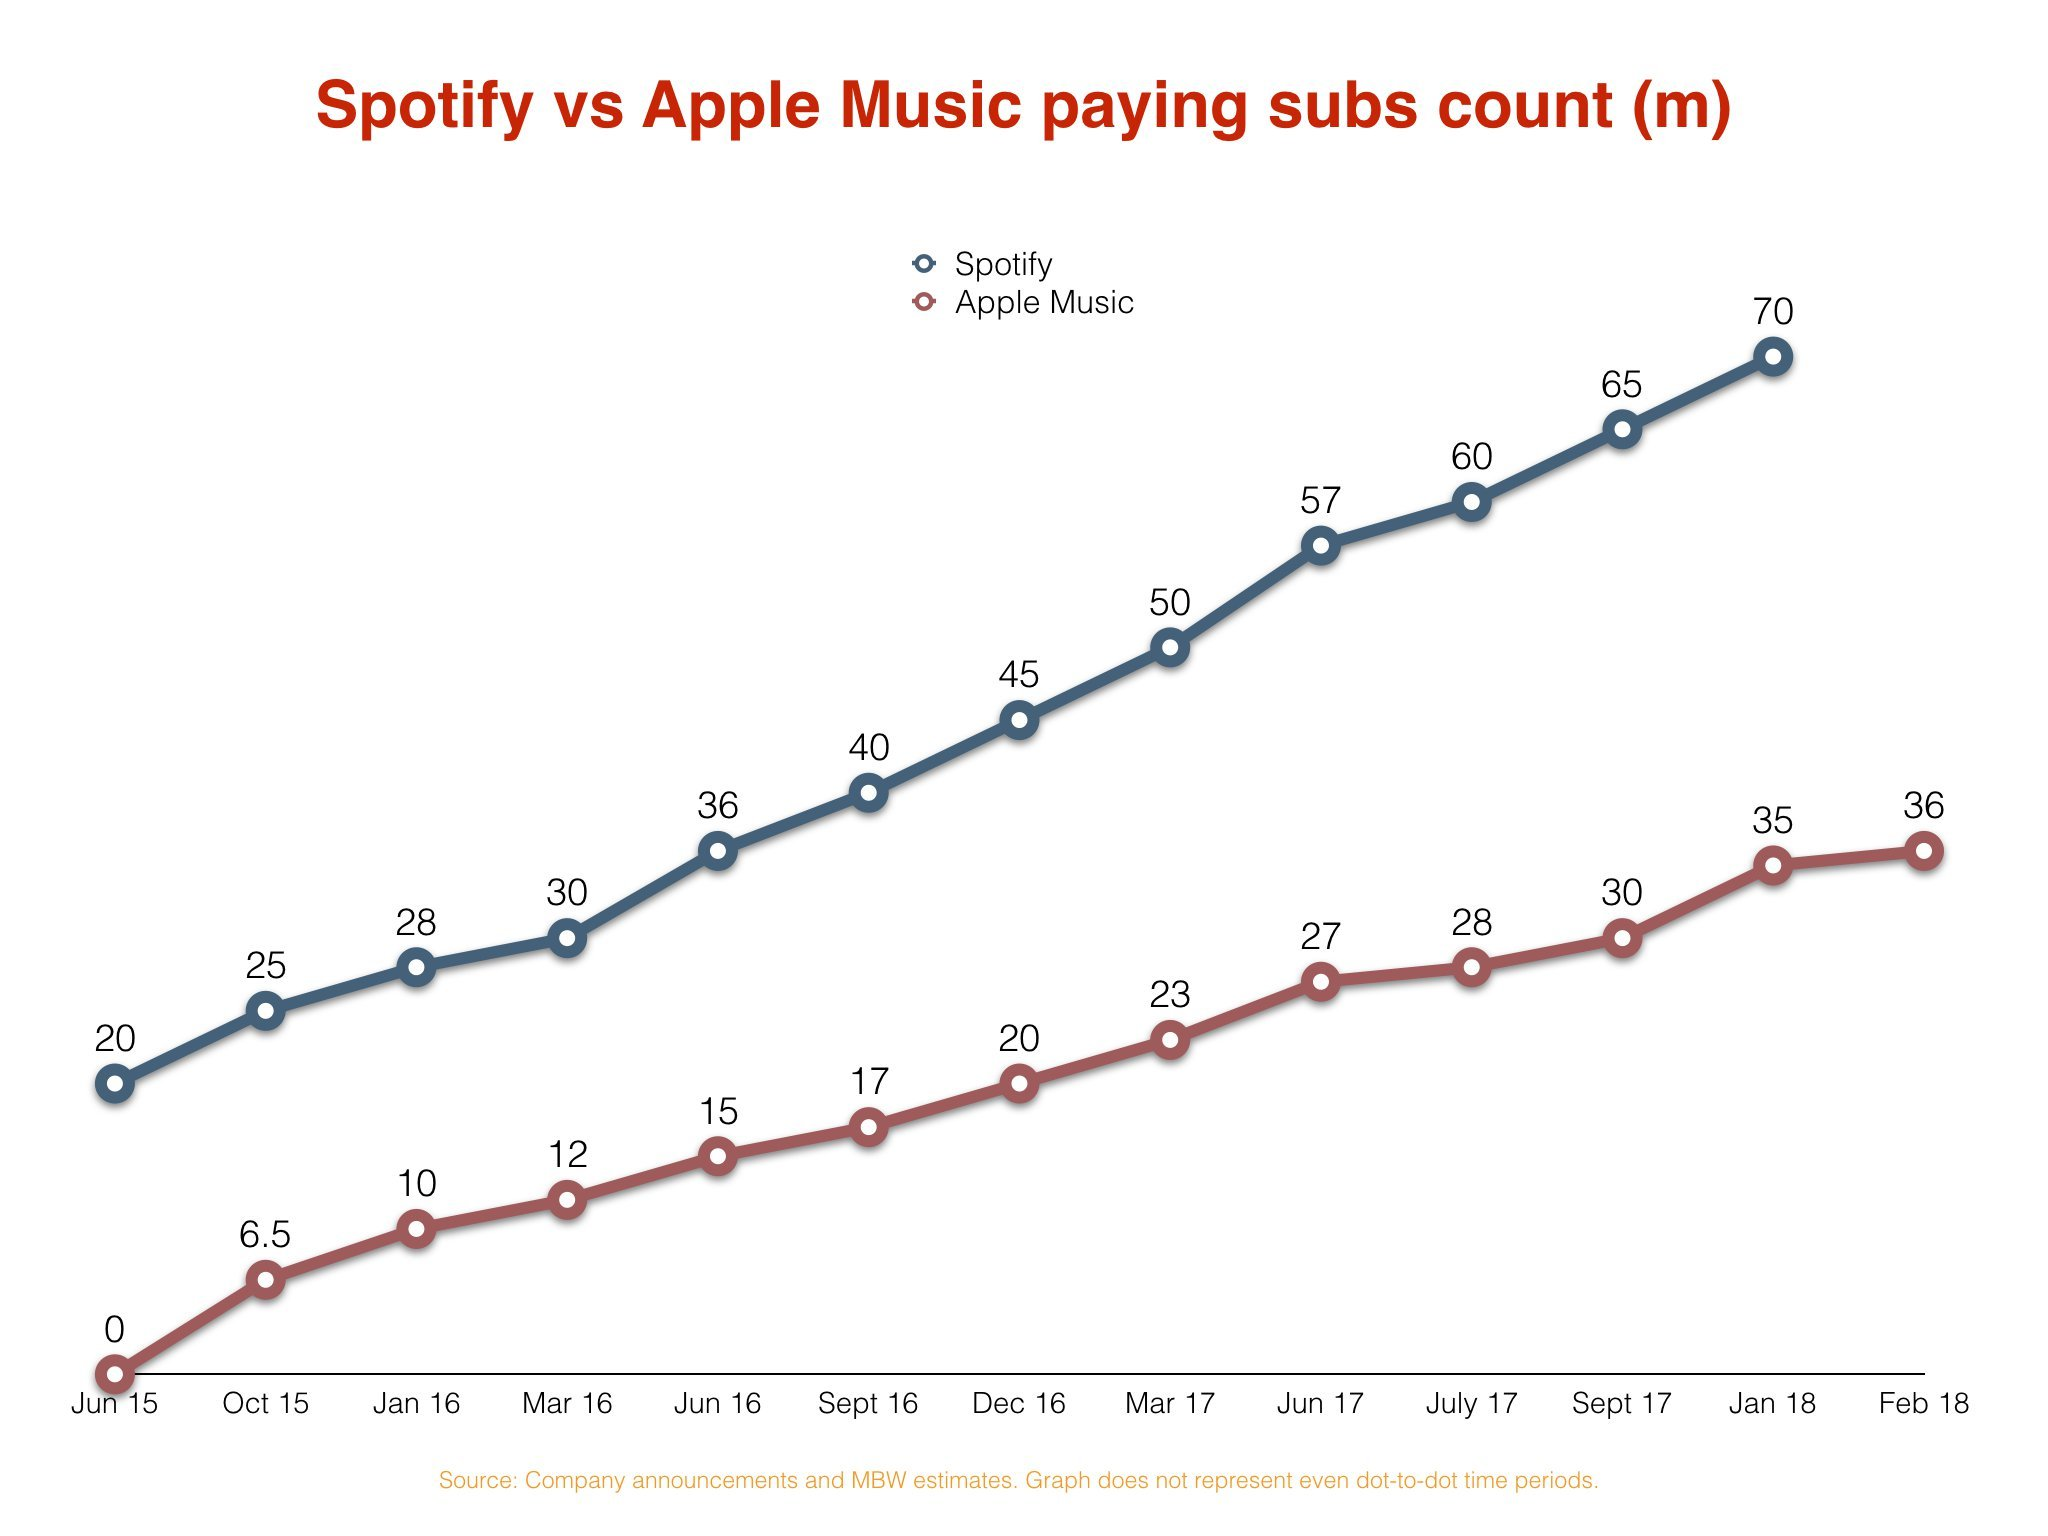 Apple Music set to overtake Spotify in U.S. subscribers, WSJ says